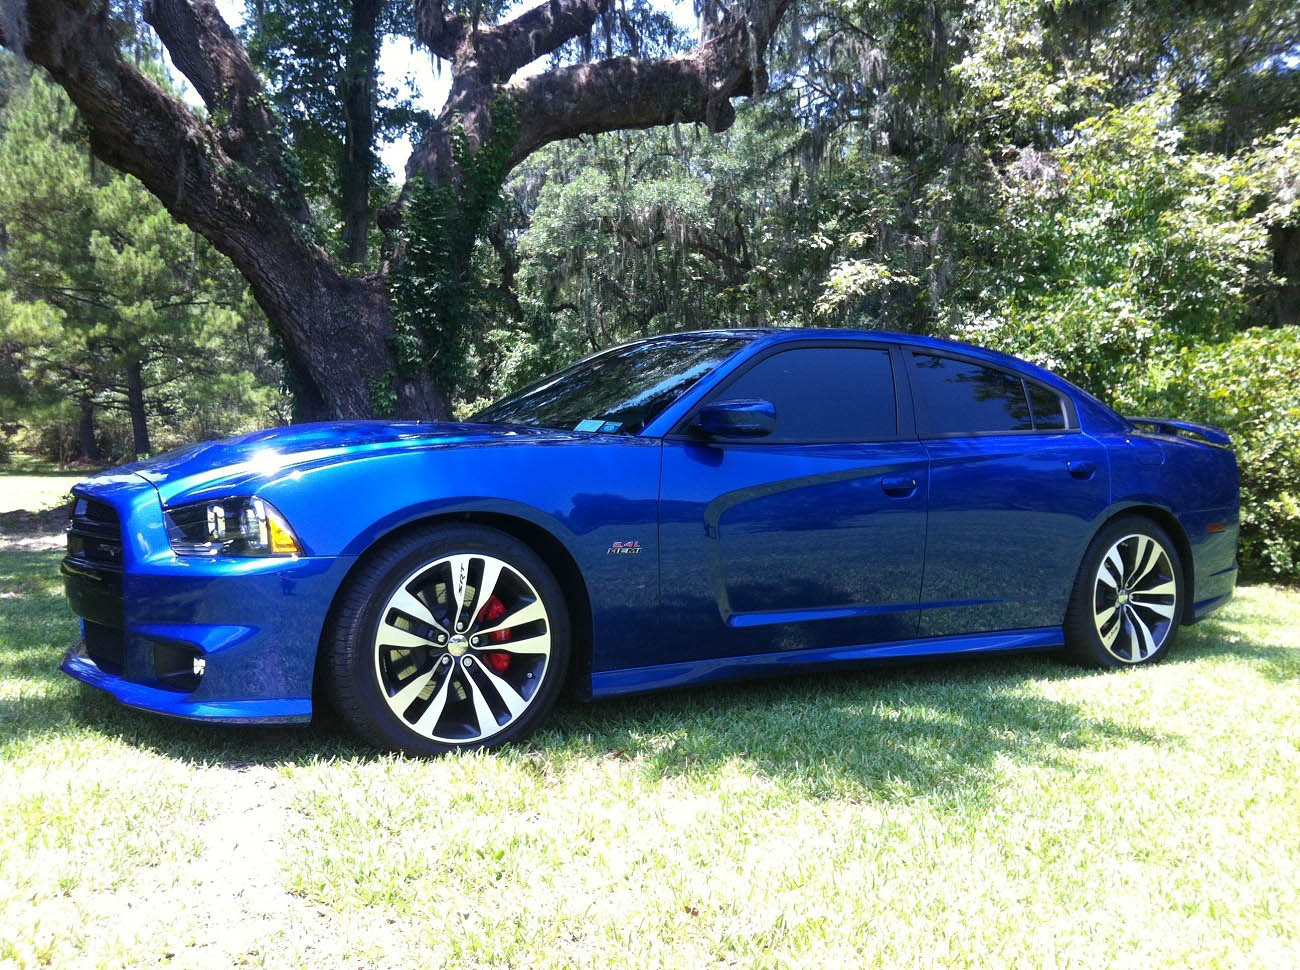 Blue Streak Pearl 2012 Dodge Charger SRT8